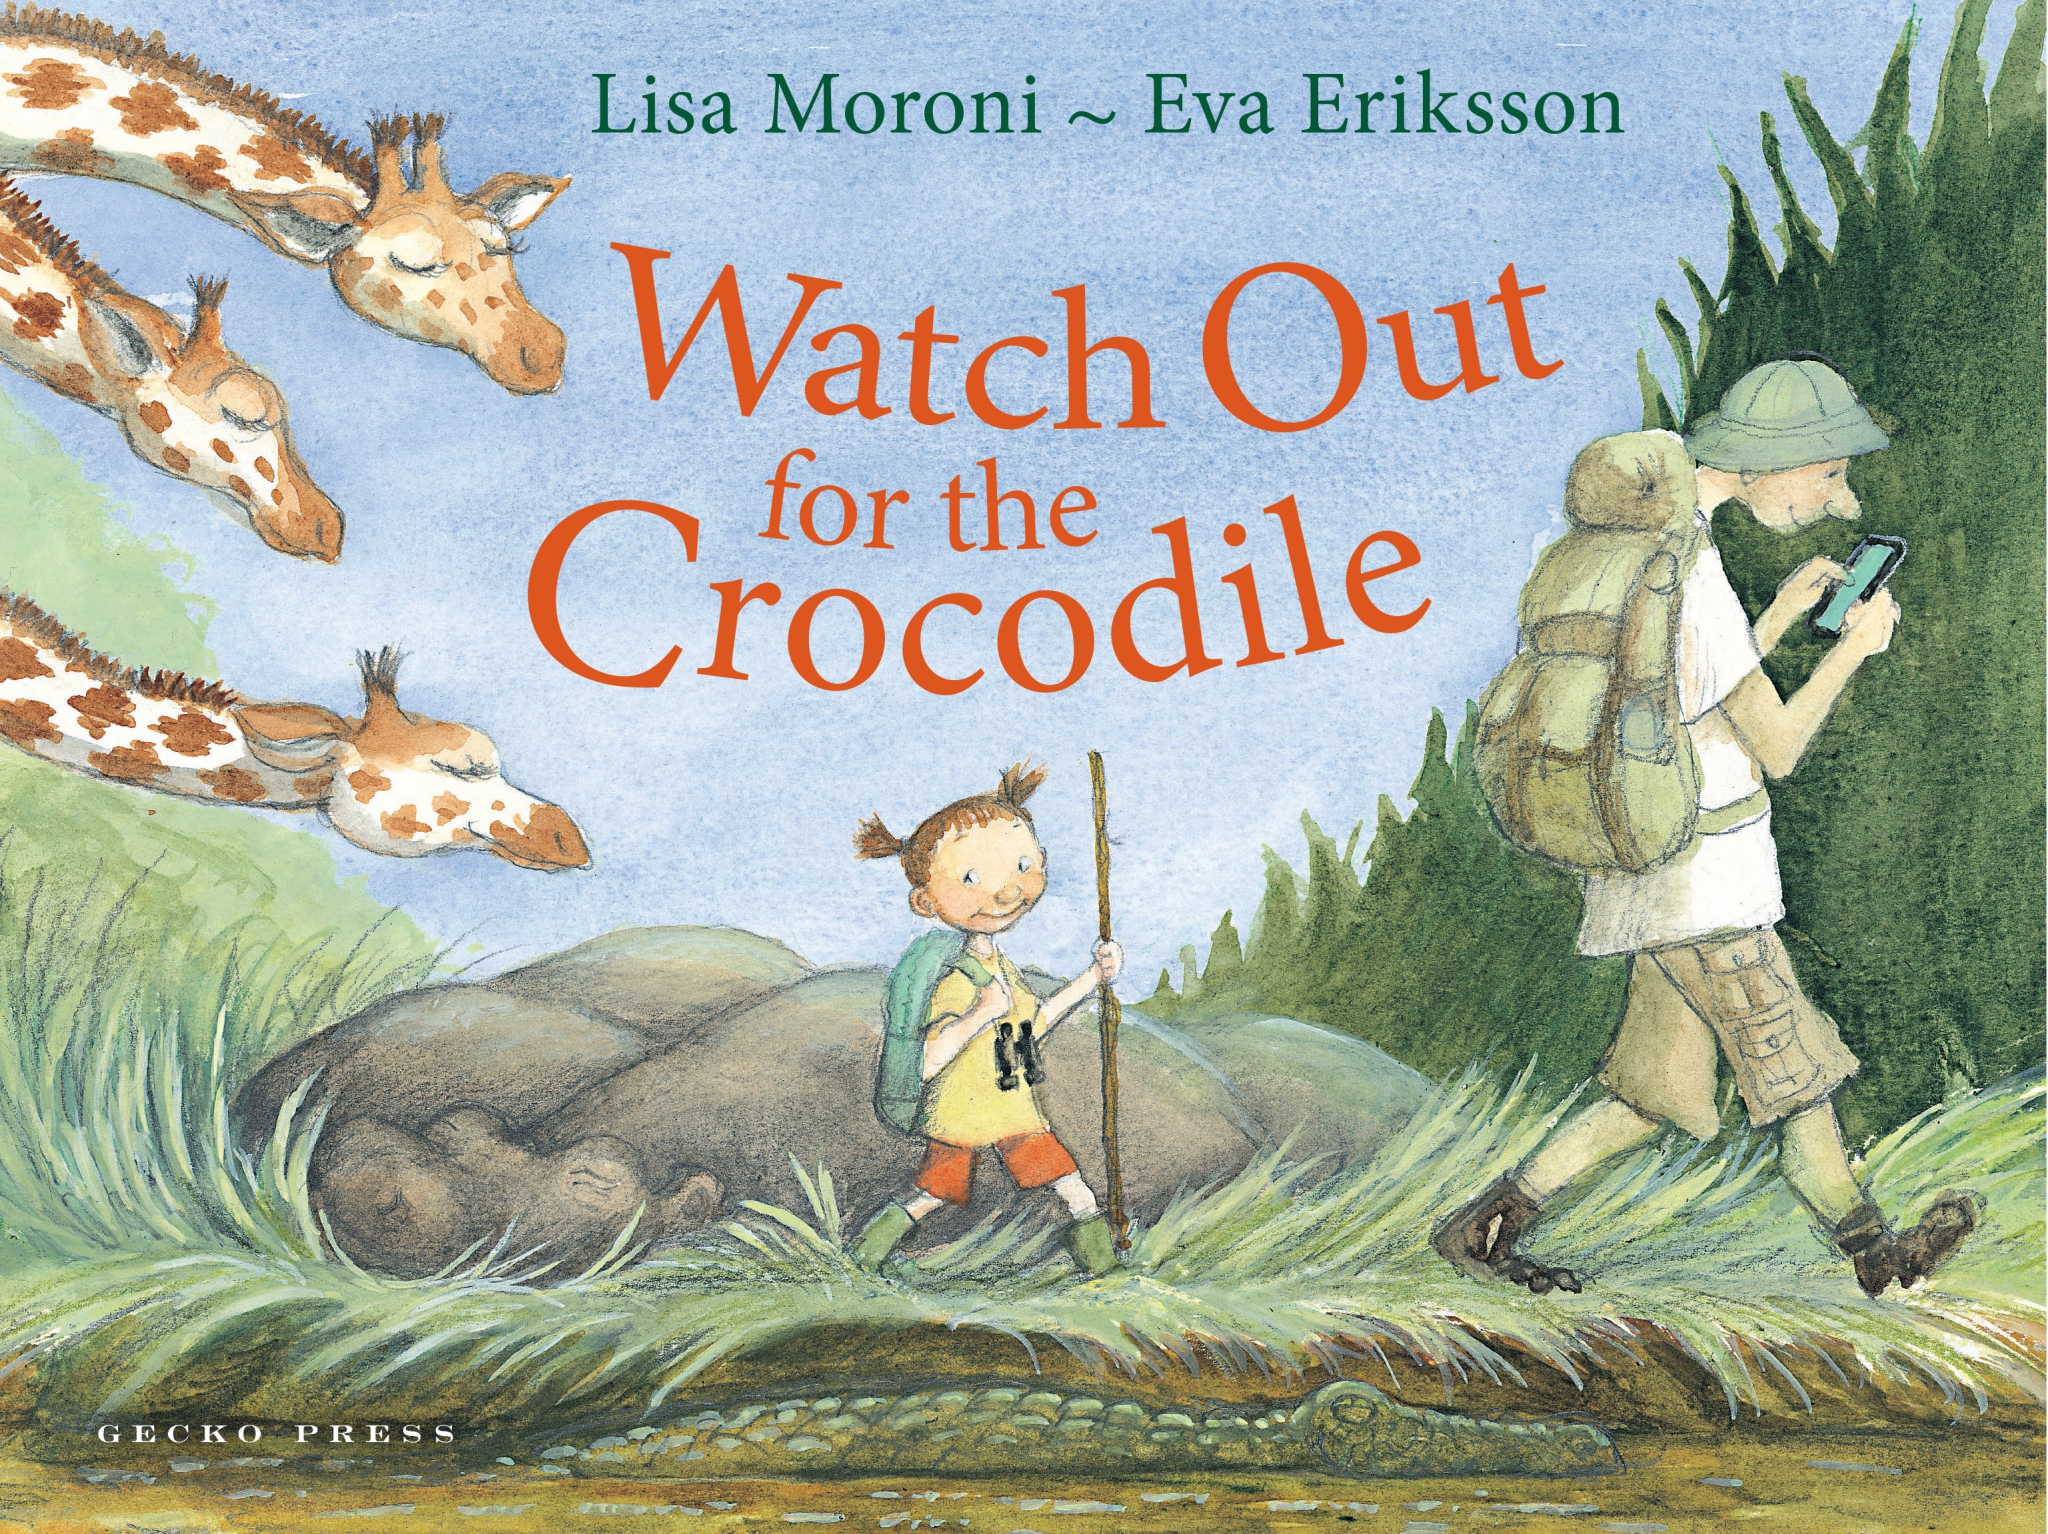 Watch out for the Crocodile book, Lisa Moroni, Eva Eriksson, picture book for kids